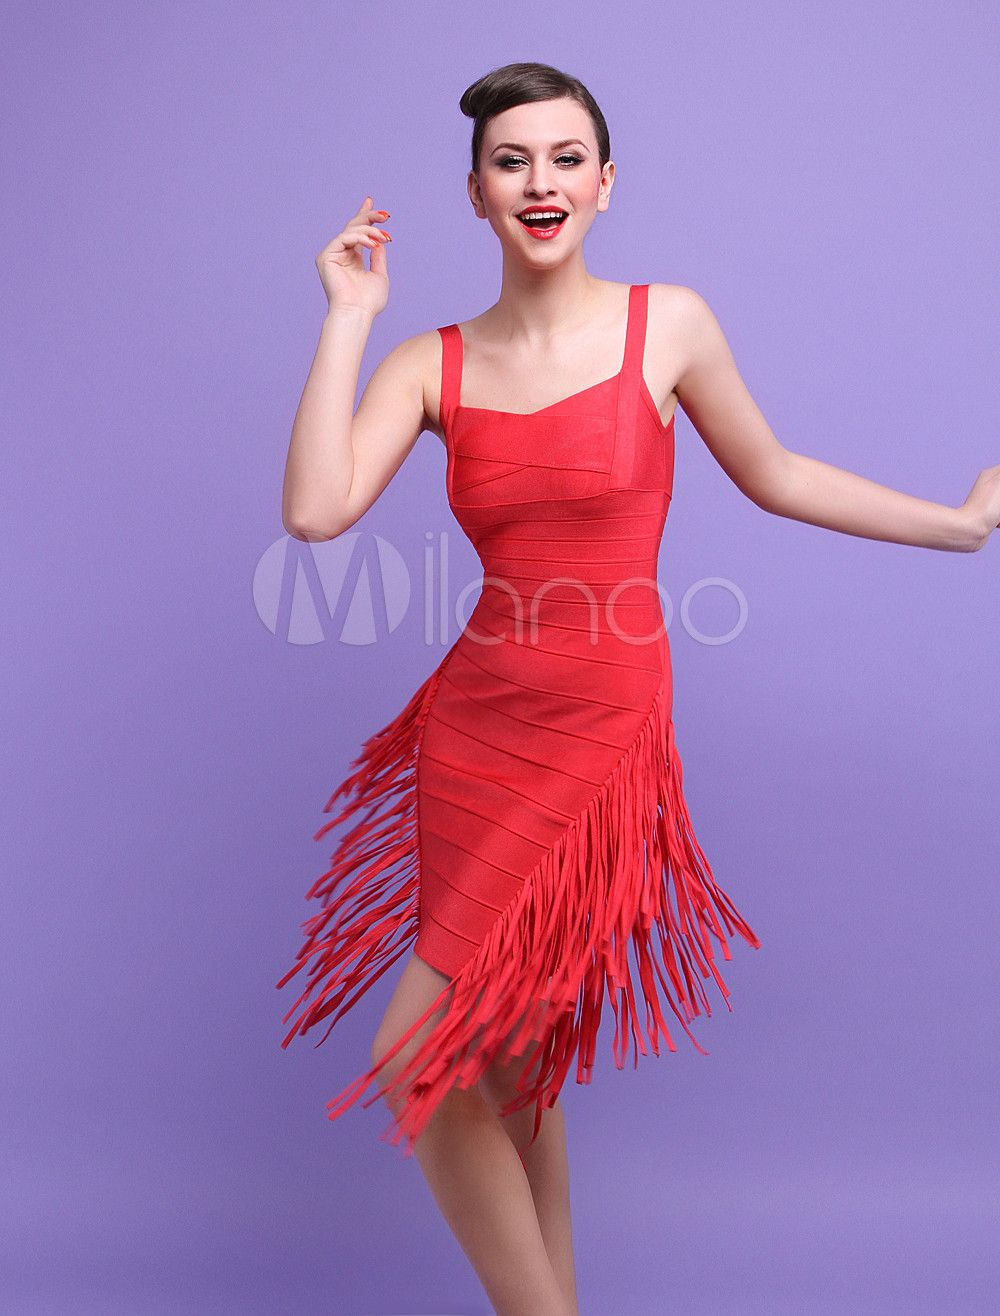 Great Gatsby Dress - Great Gatsby Dresses for Sale